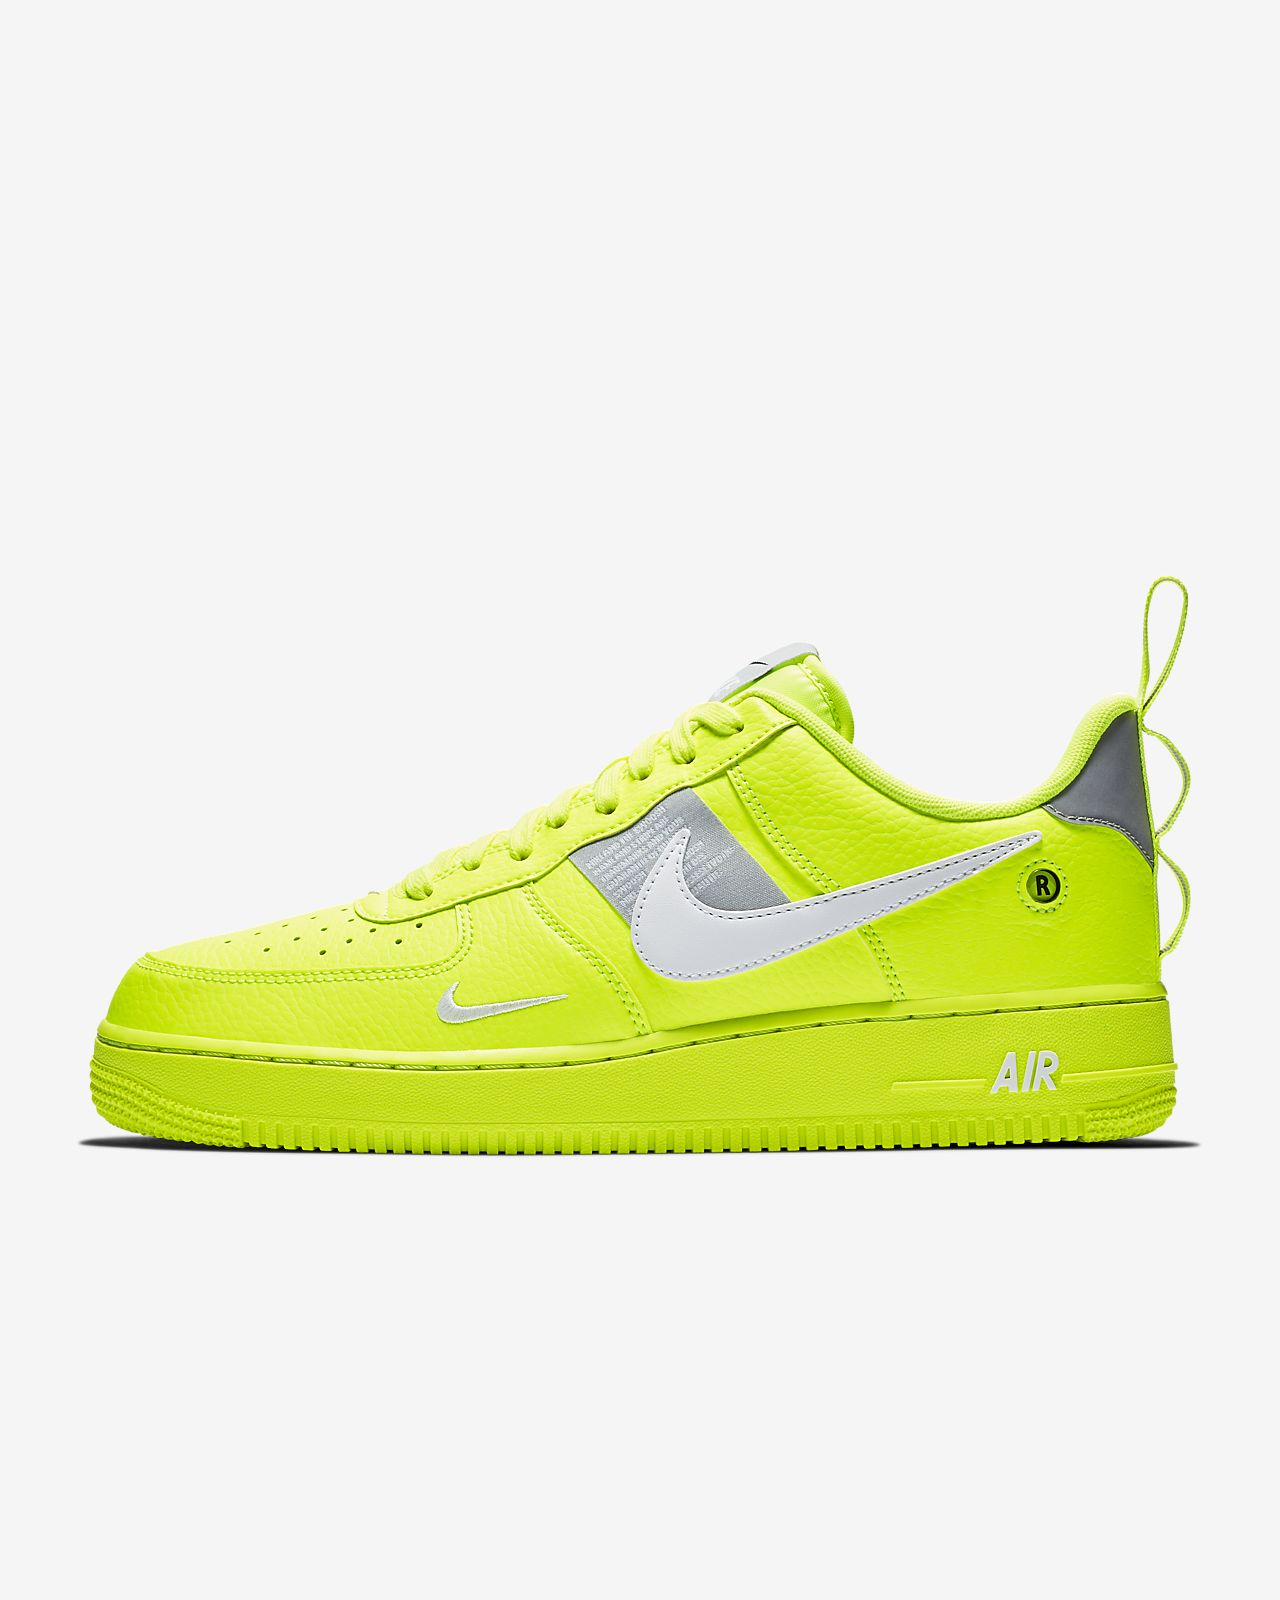 1fd6a7a559dca Nike Air Force 1 '07 LV8 Utility Men's Shoe. Nike.com SG